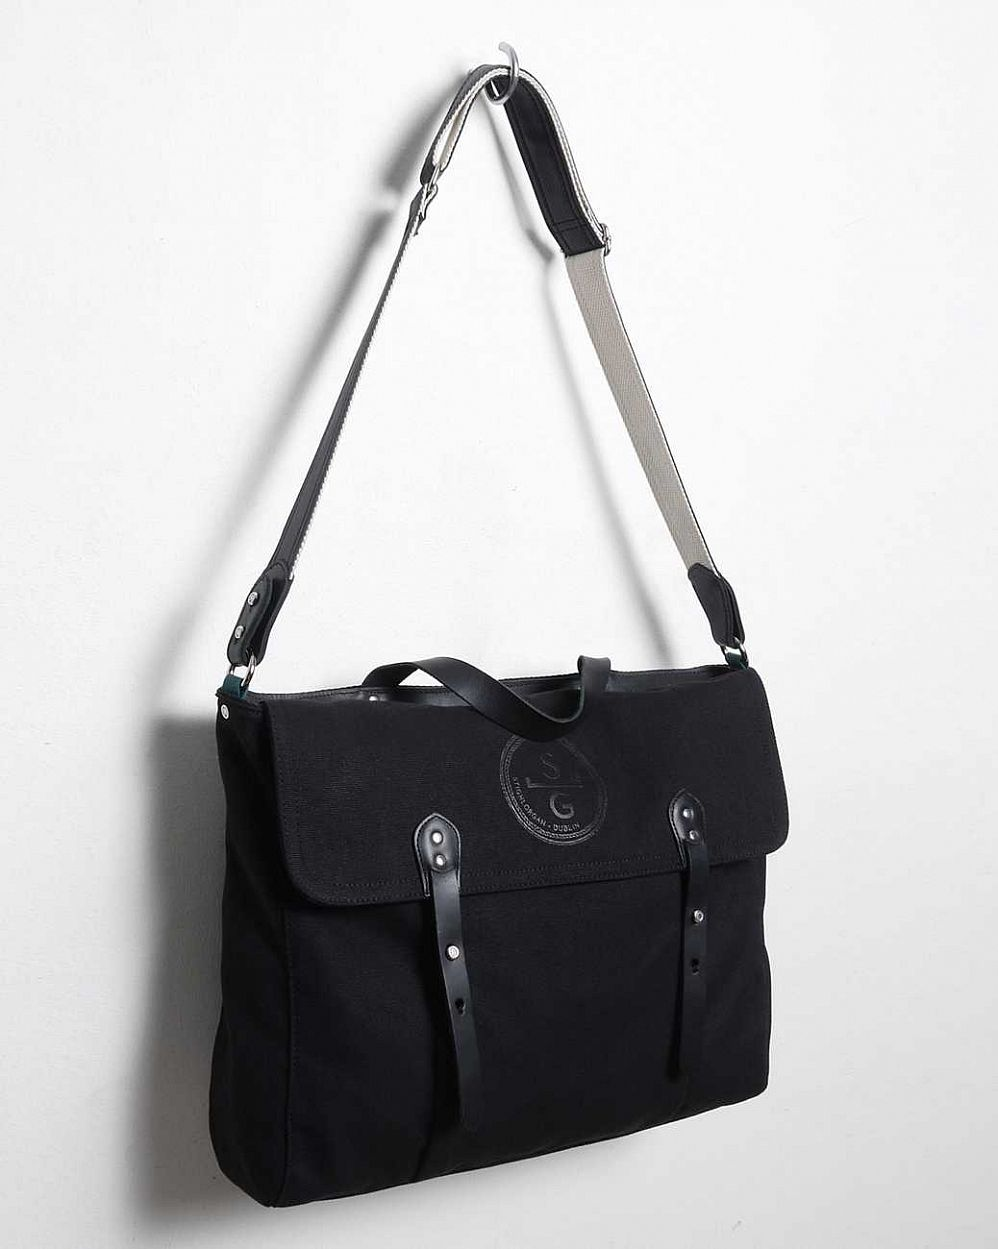 купить Сумка Stighlorgan Seanan Leather Canvas Satchel Tote Black в Москве